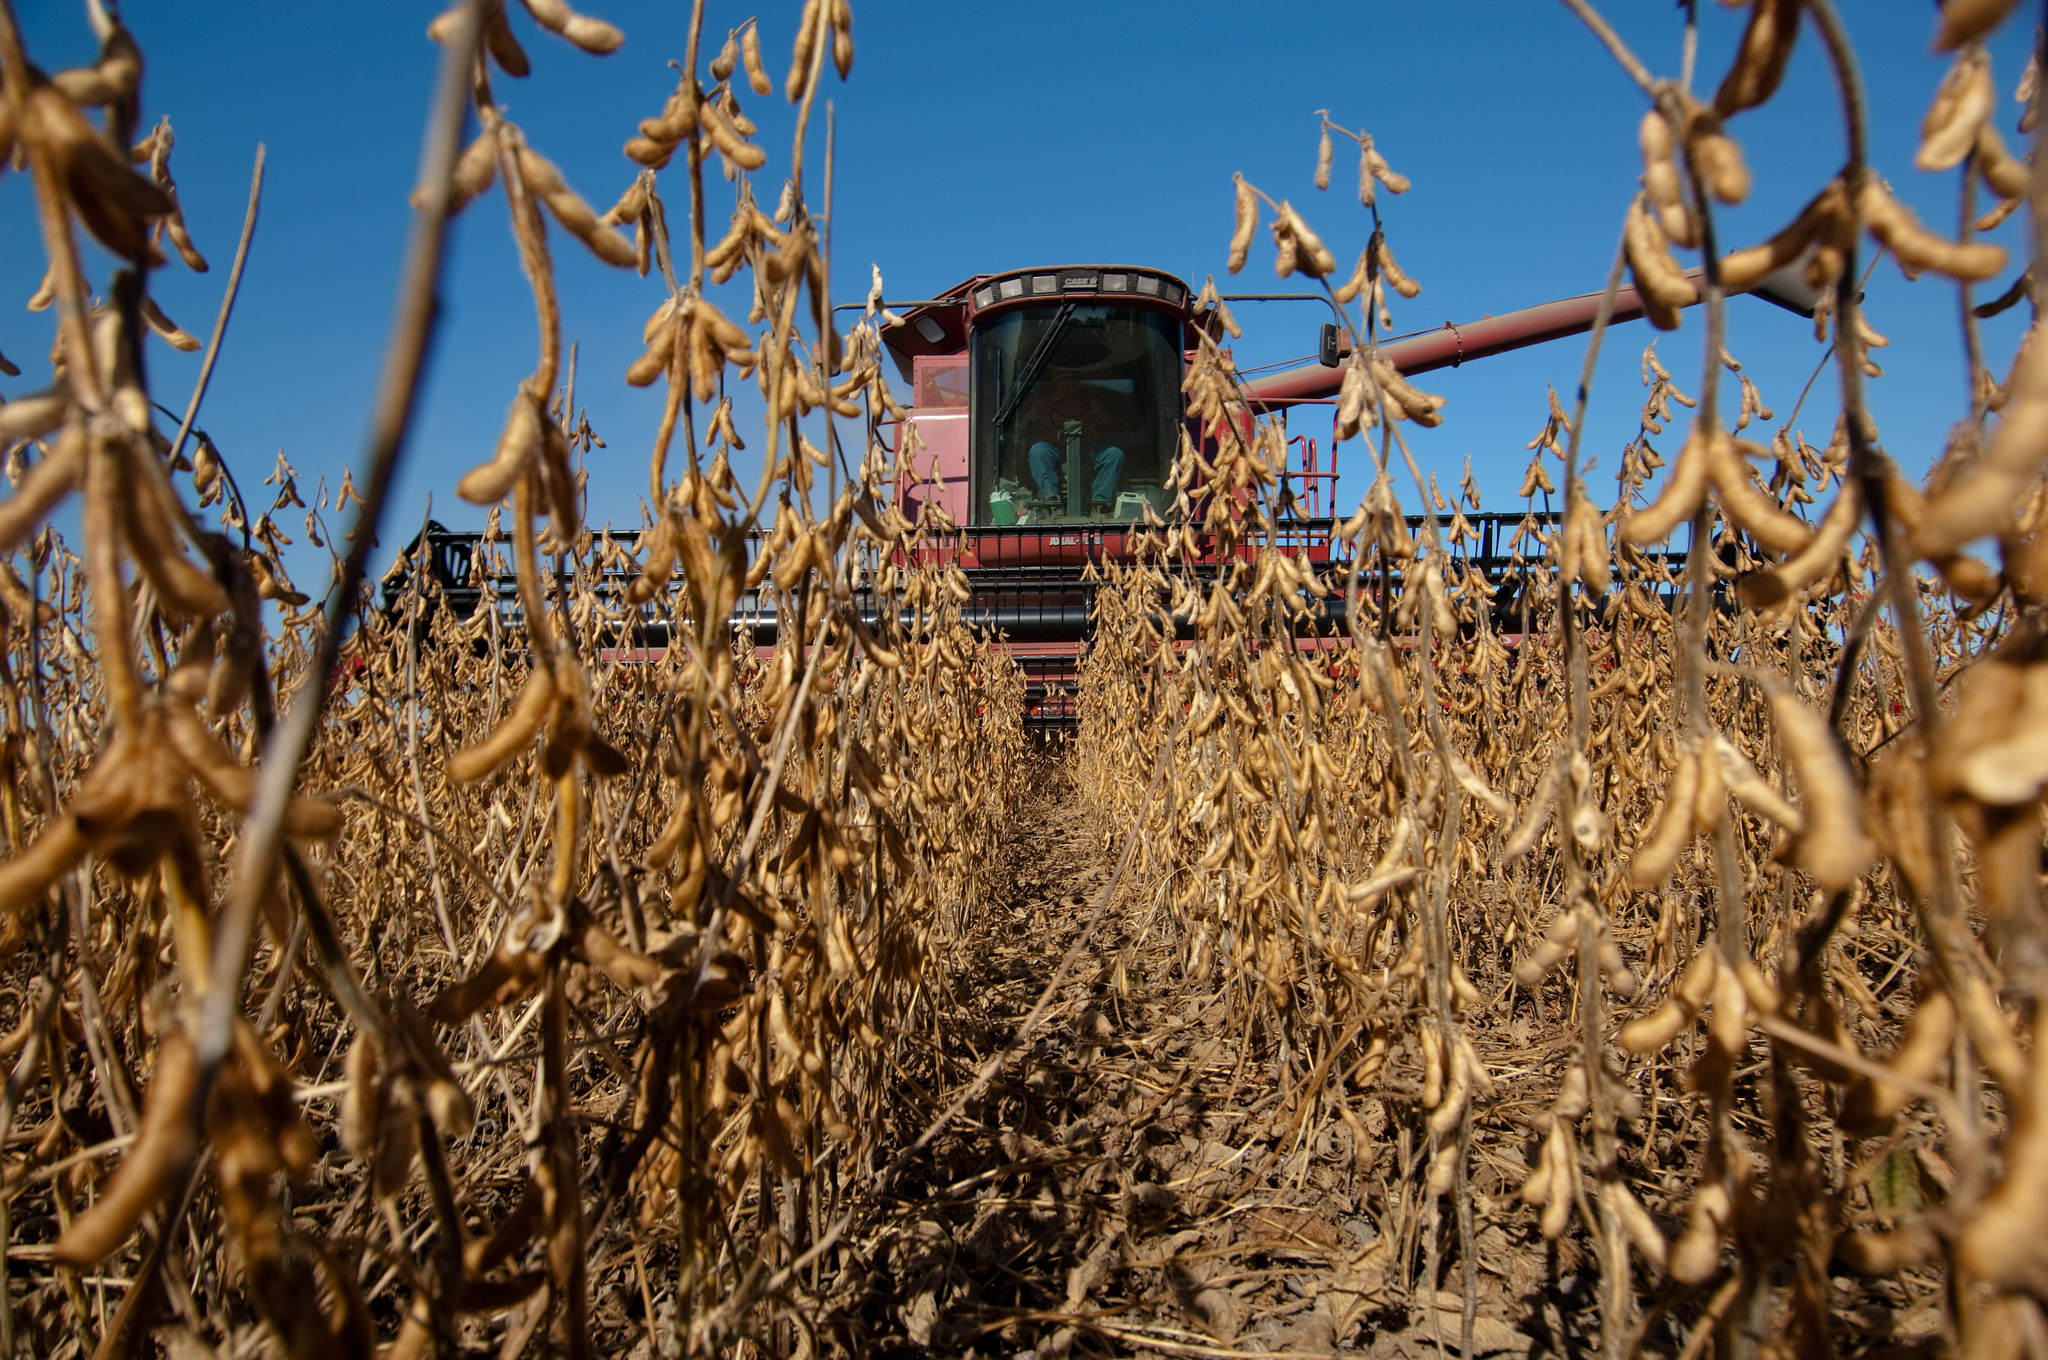 Keeping Safety Top of Mind During Harvest